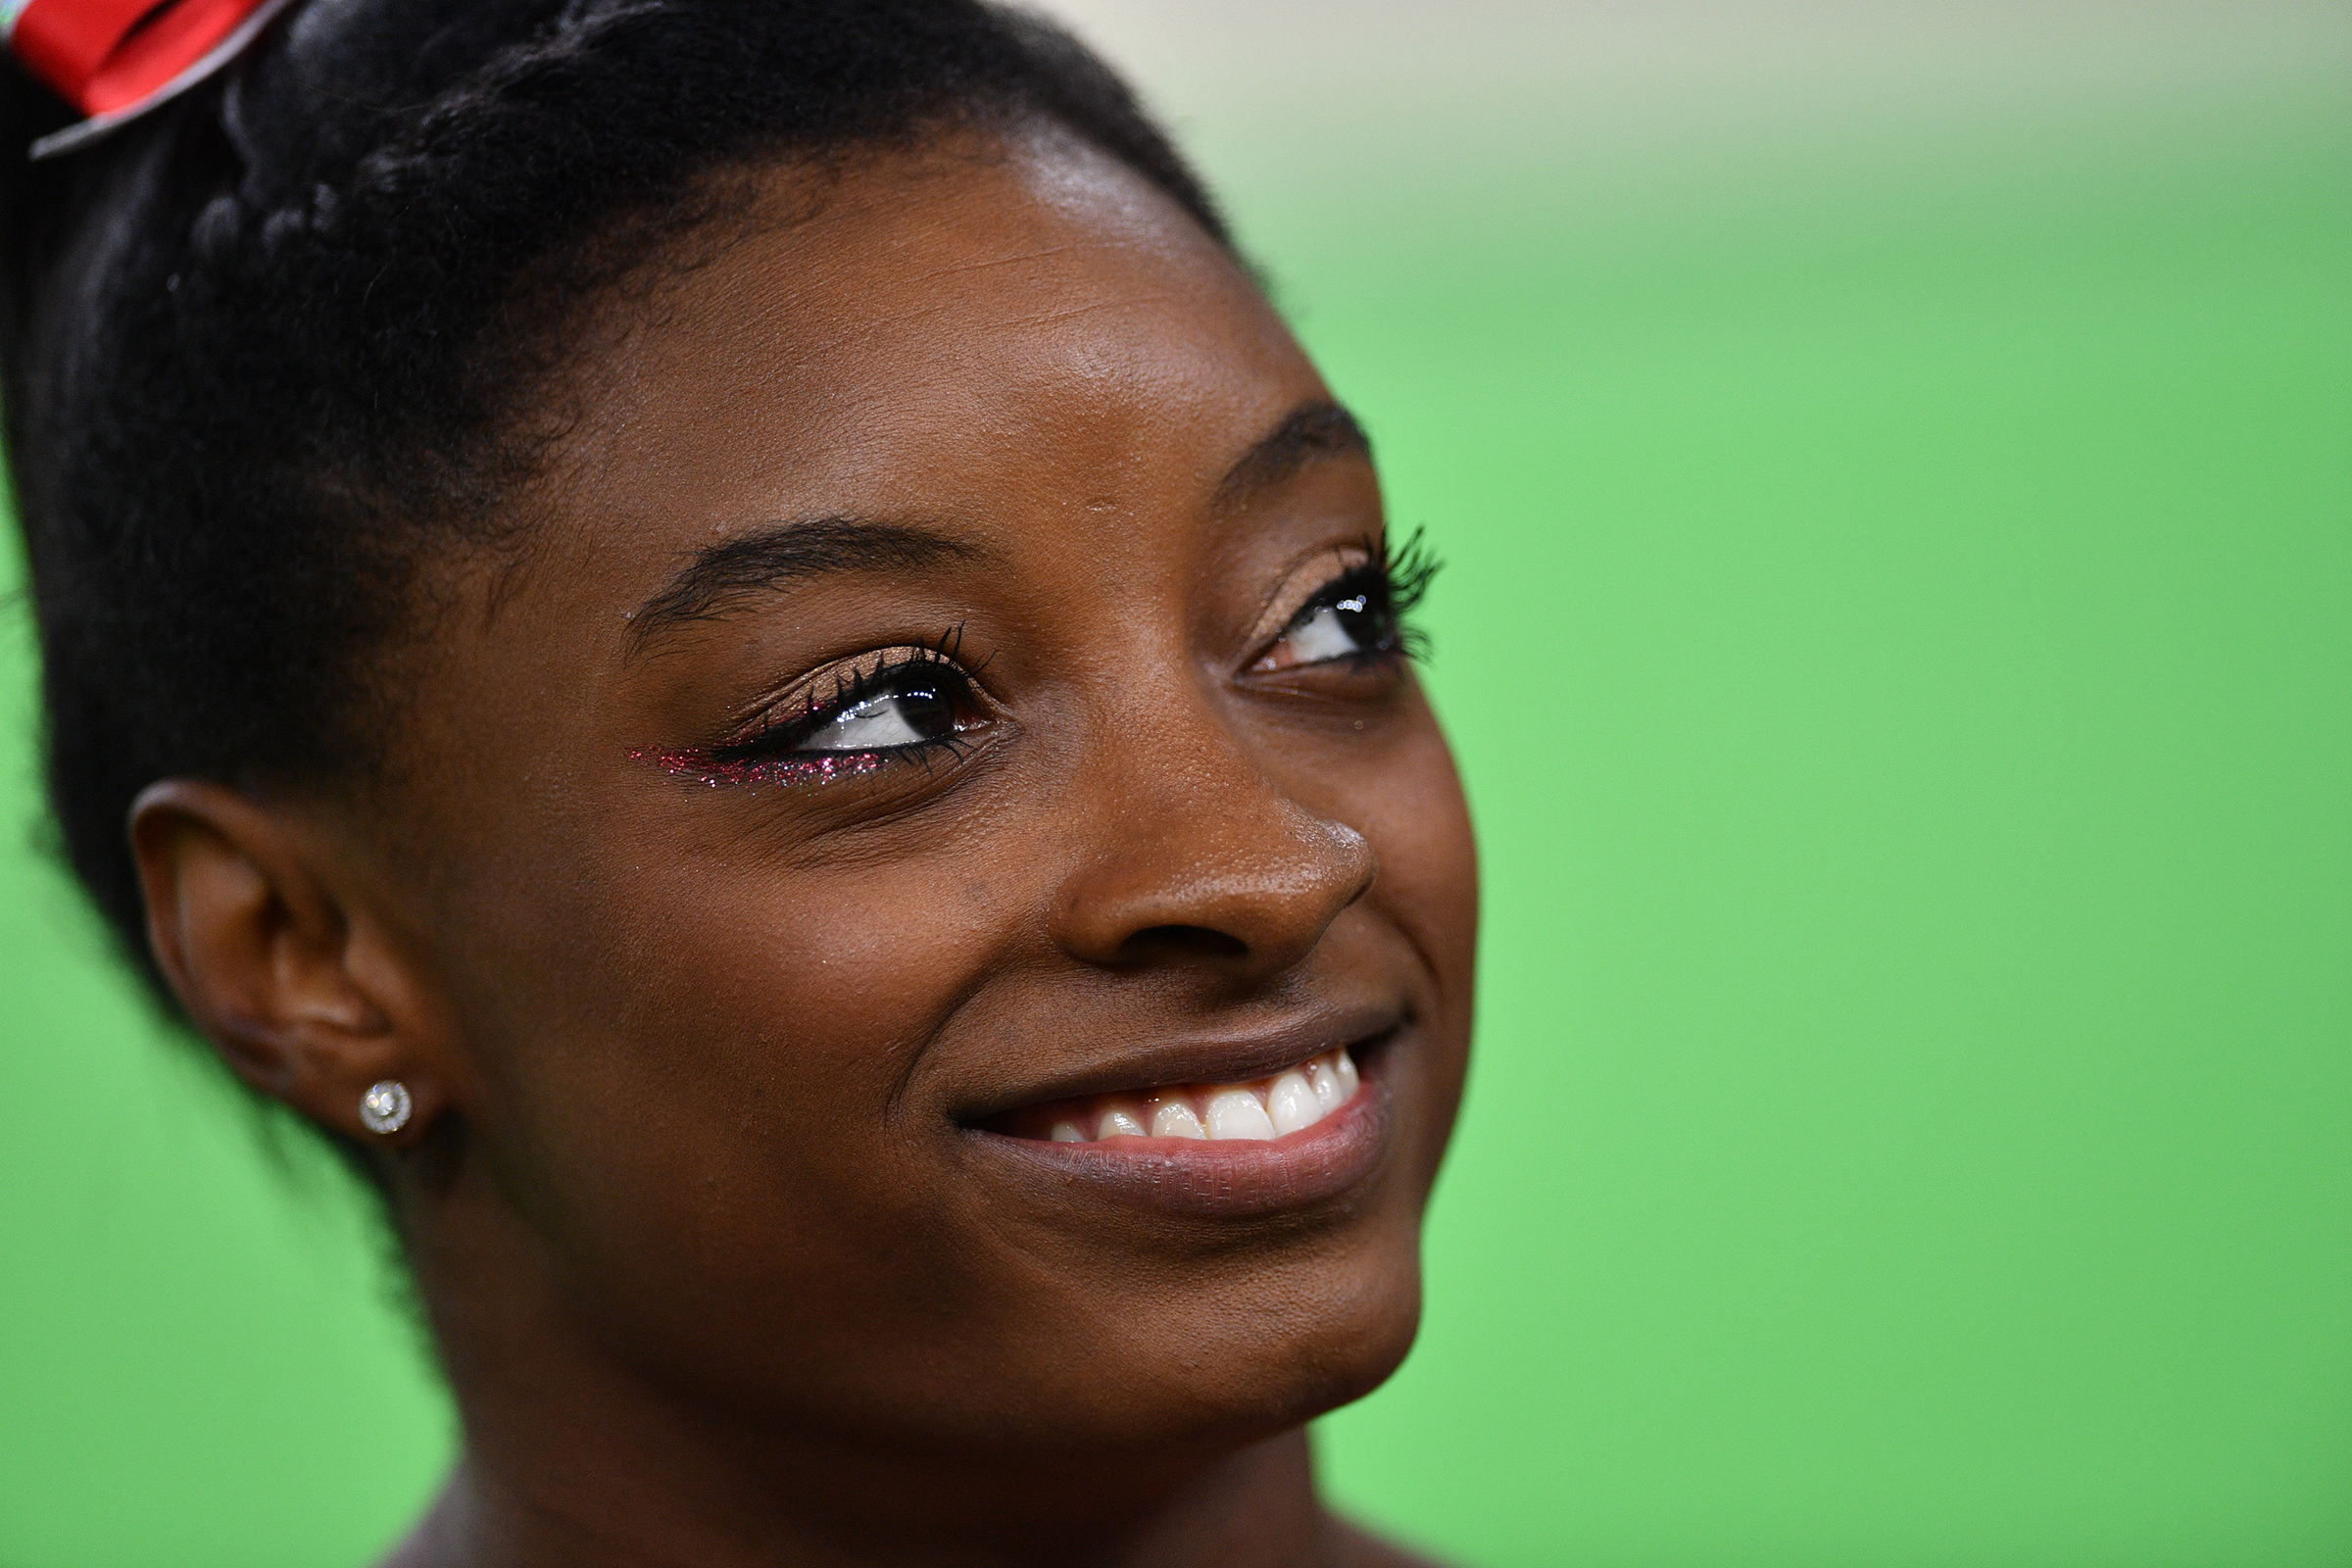 Simone Biles of the USA smiles during the Women's Vault Final at the Artistic Gymnastics events of the Rio 2016 Olympic Games at the Rio Olympic Arena in Rio de Janeiro, Brazil, 14 August 2016. Biles won the Gold medal. Photo: Lukas Schulze/dpa